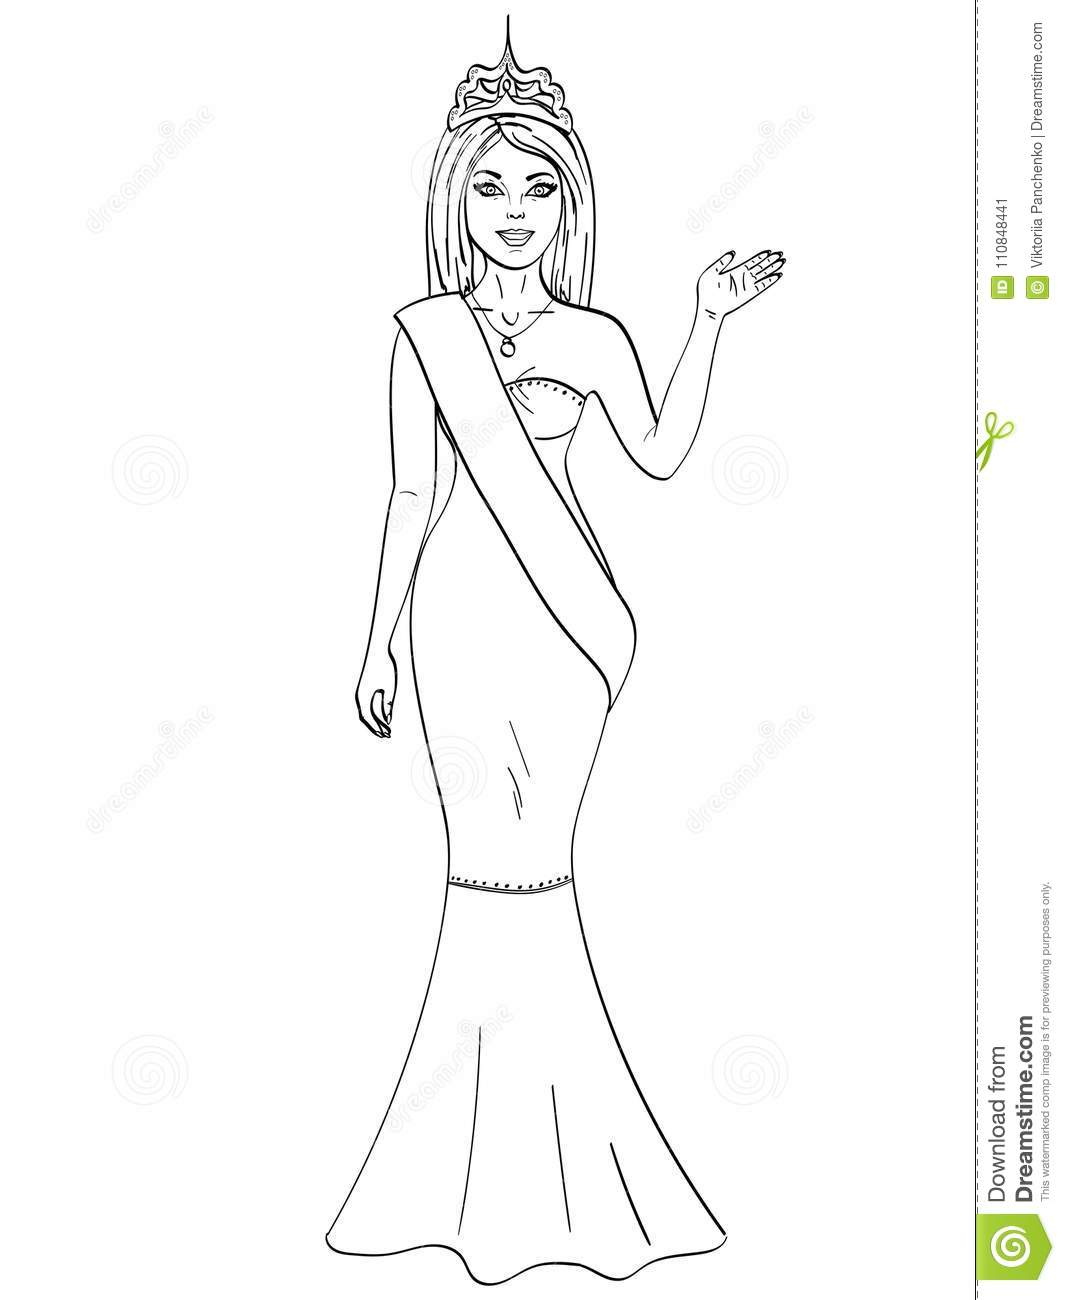 Miss the world of beauty. The girl, the winner of the contest of models. Object on white background. Coloring book